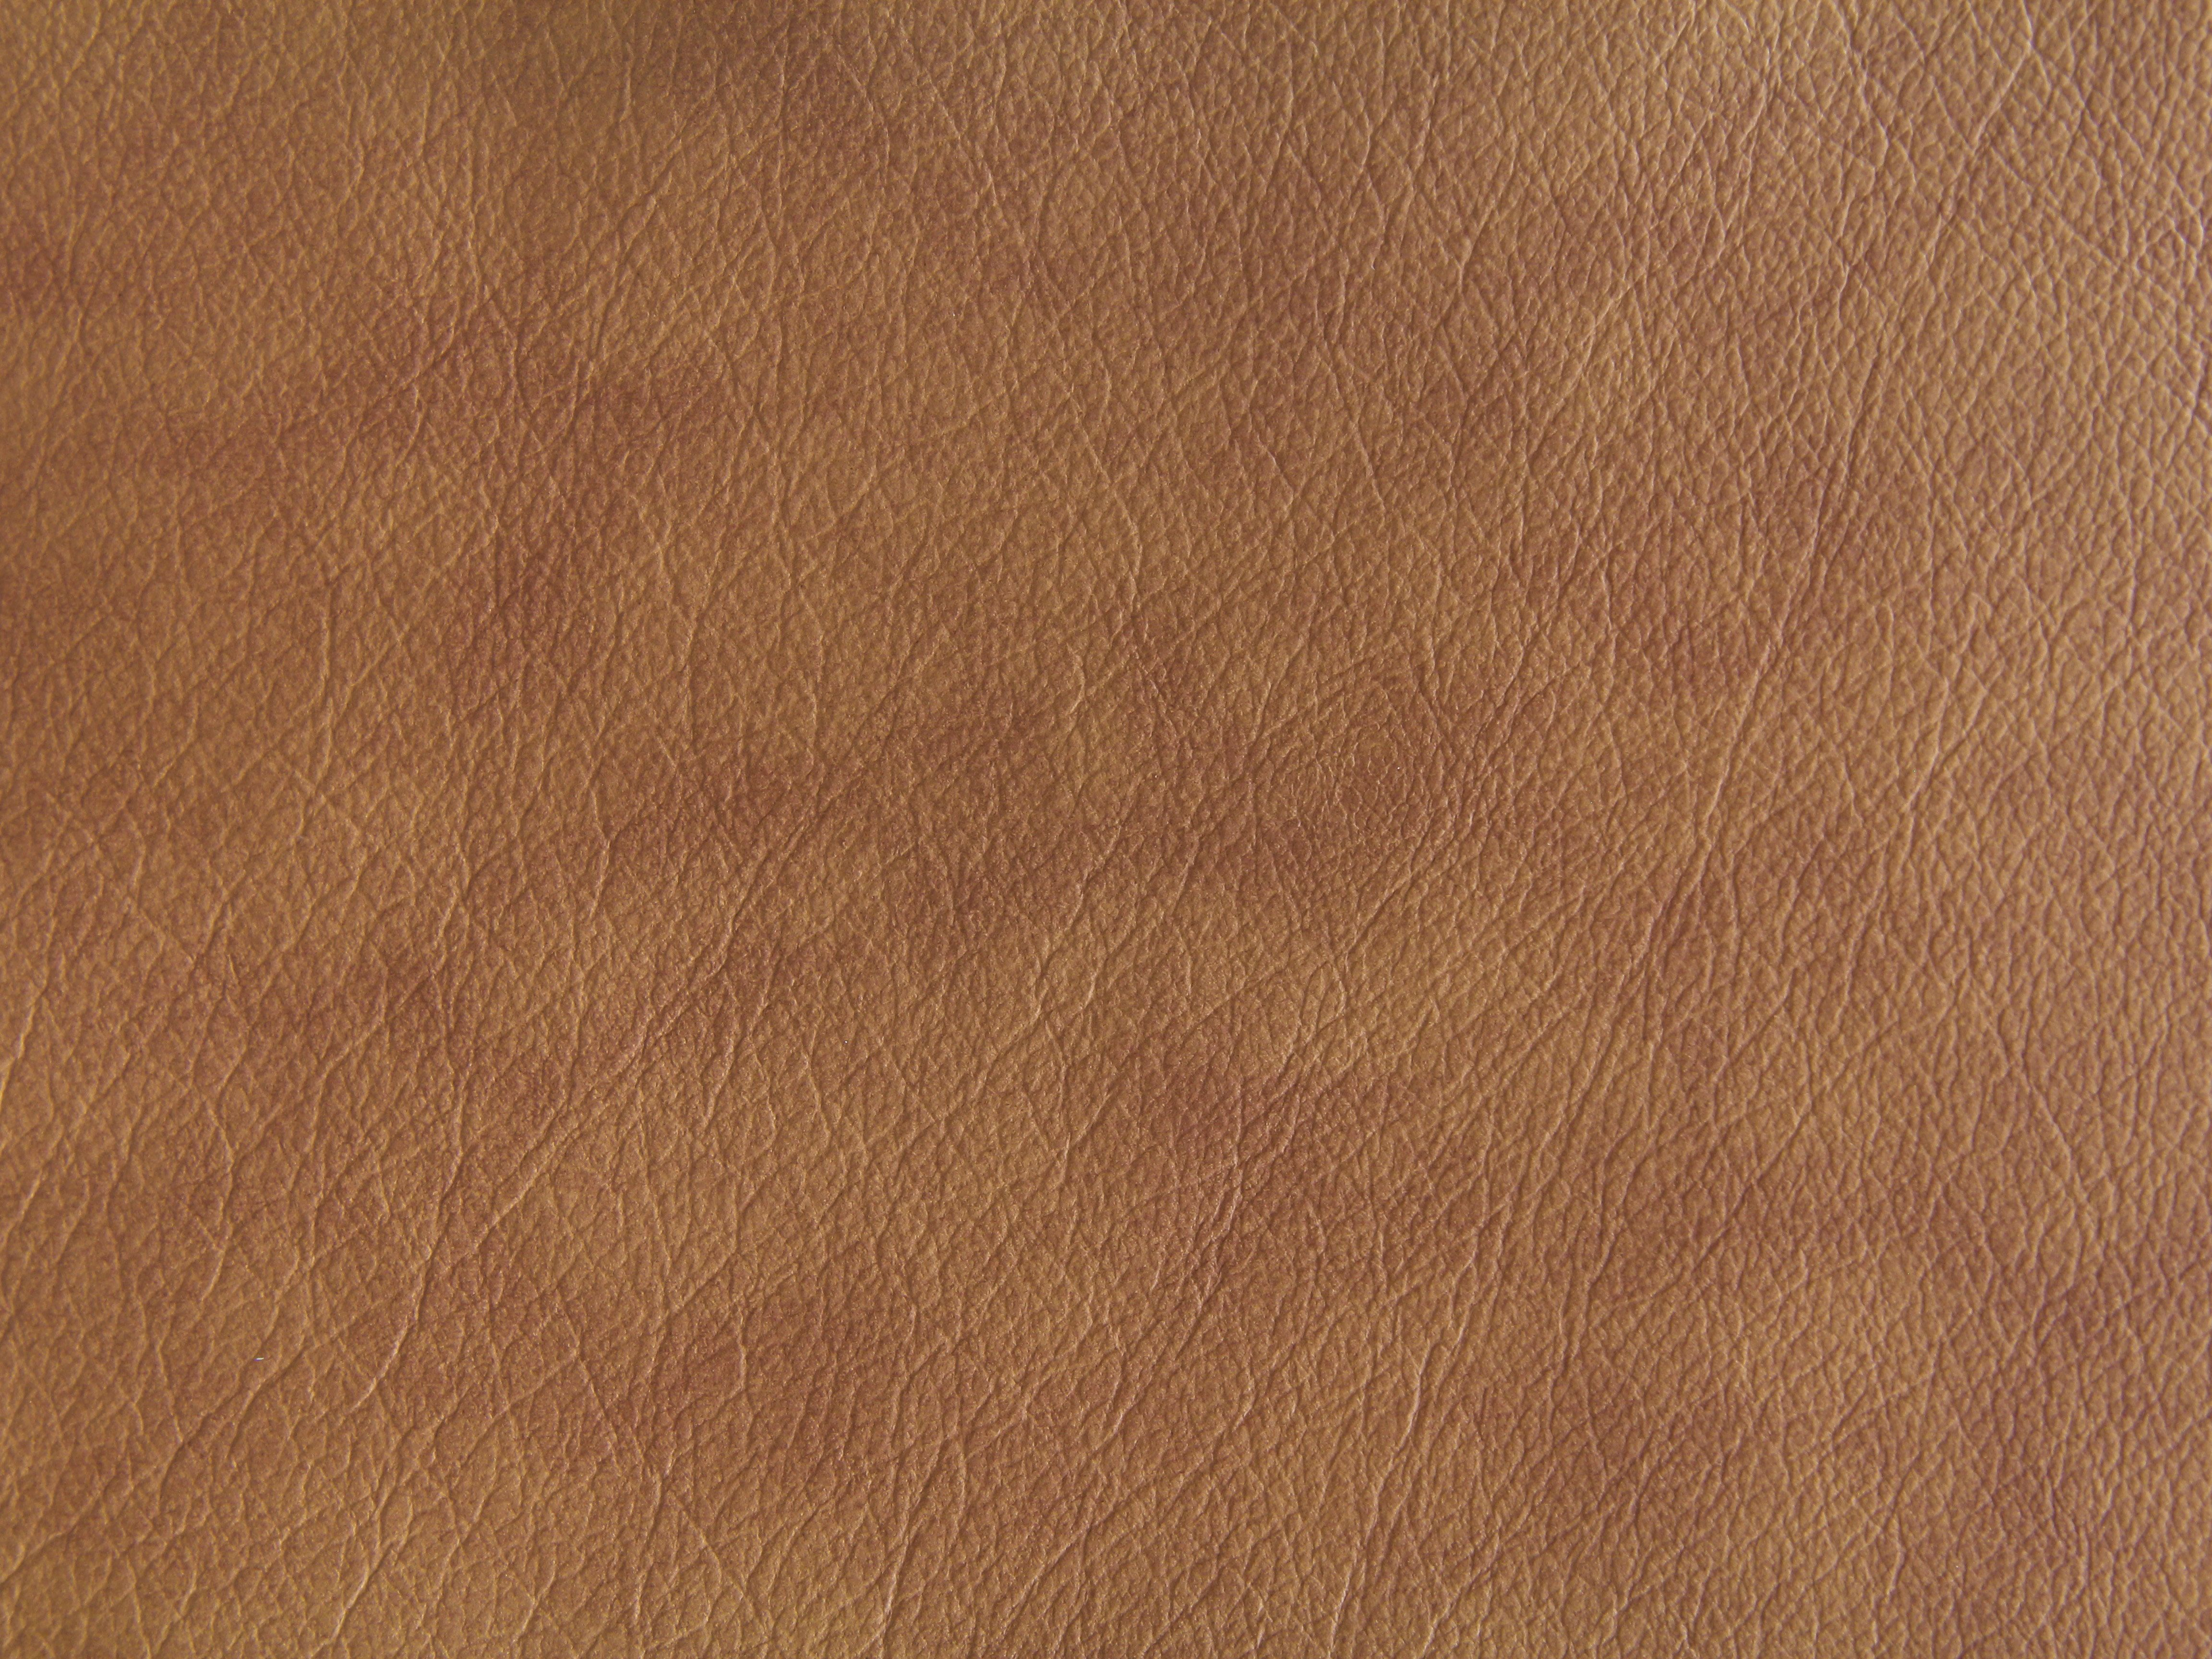 Texture Wallpapers Brown Image Wallpaper WallDevil